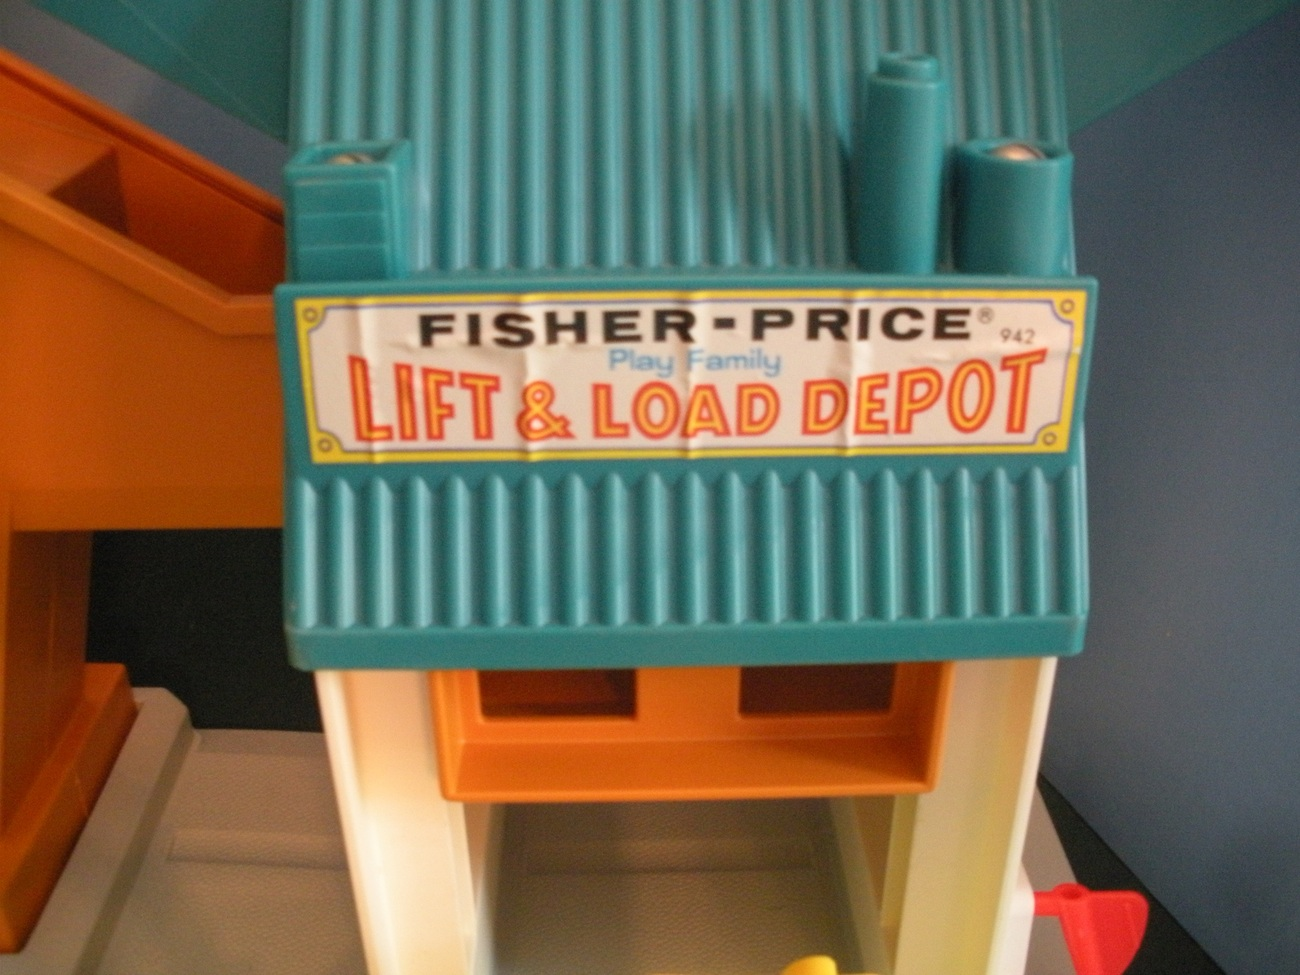 Vtg. Fisher Price Little People #942 Lift and Load Depot COMPLETE w/BOX!